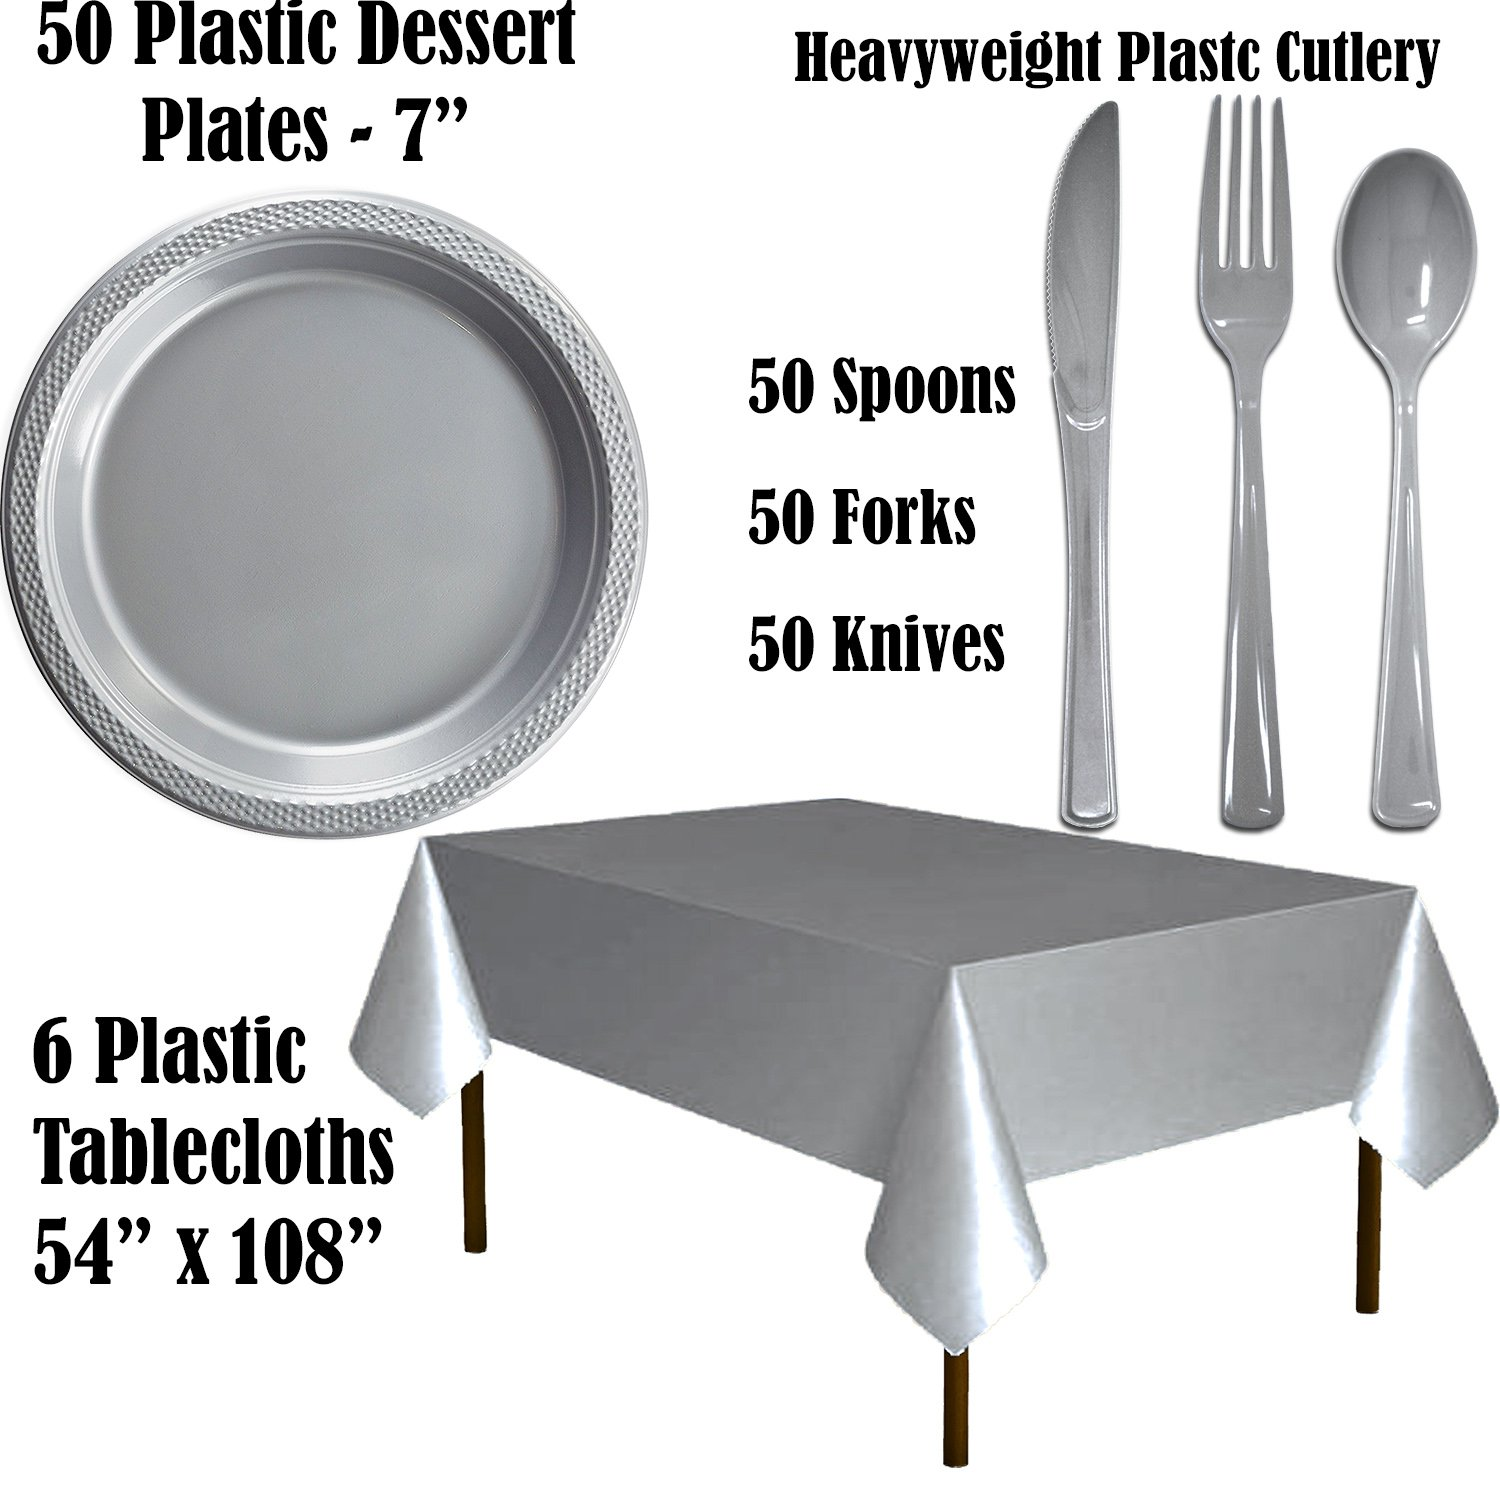 Plastic Party Supplies for 50 Guests - Lavender and Silver - Dinner Plates, Dessert Plates, Cups, Lunch Napkins, Cutlery, and Tablecloths - Premium Quality Tableware Set by HeroFiber (Image #2)